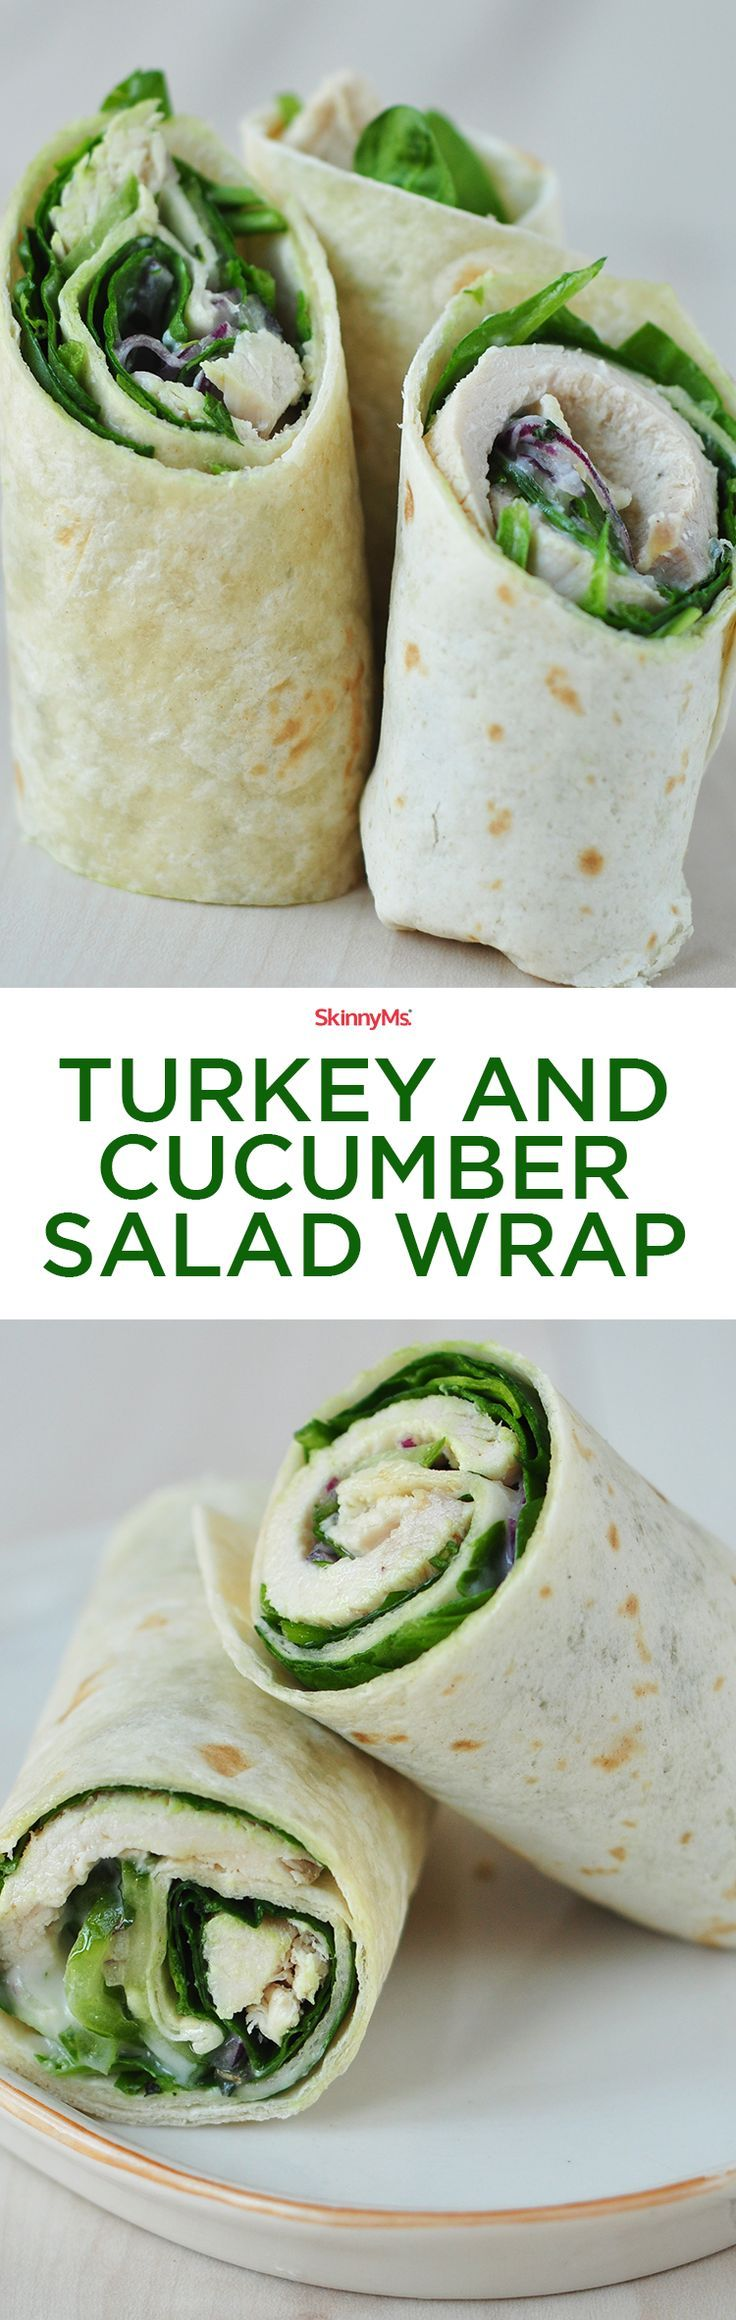 This Turkey and Cucumber Salad Wrap is easy, convenient, and delicious!